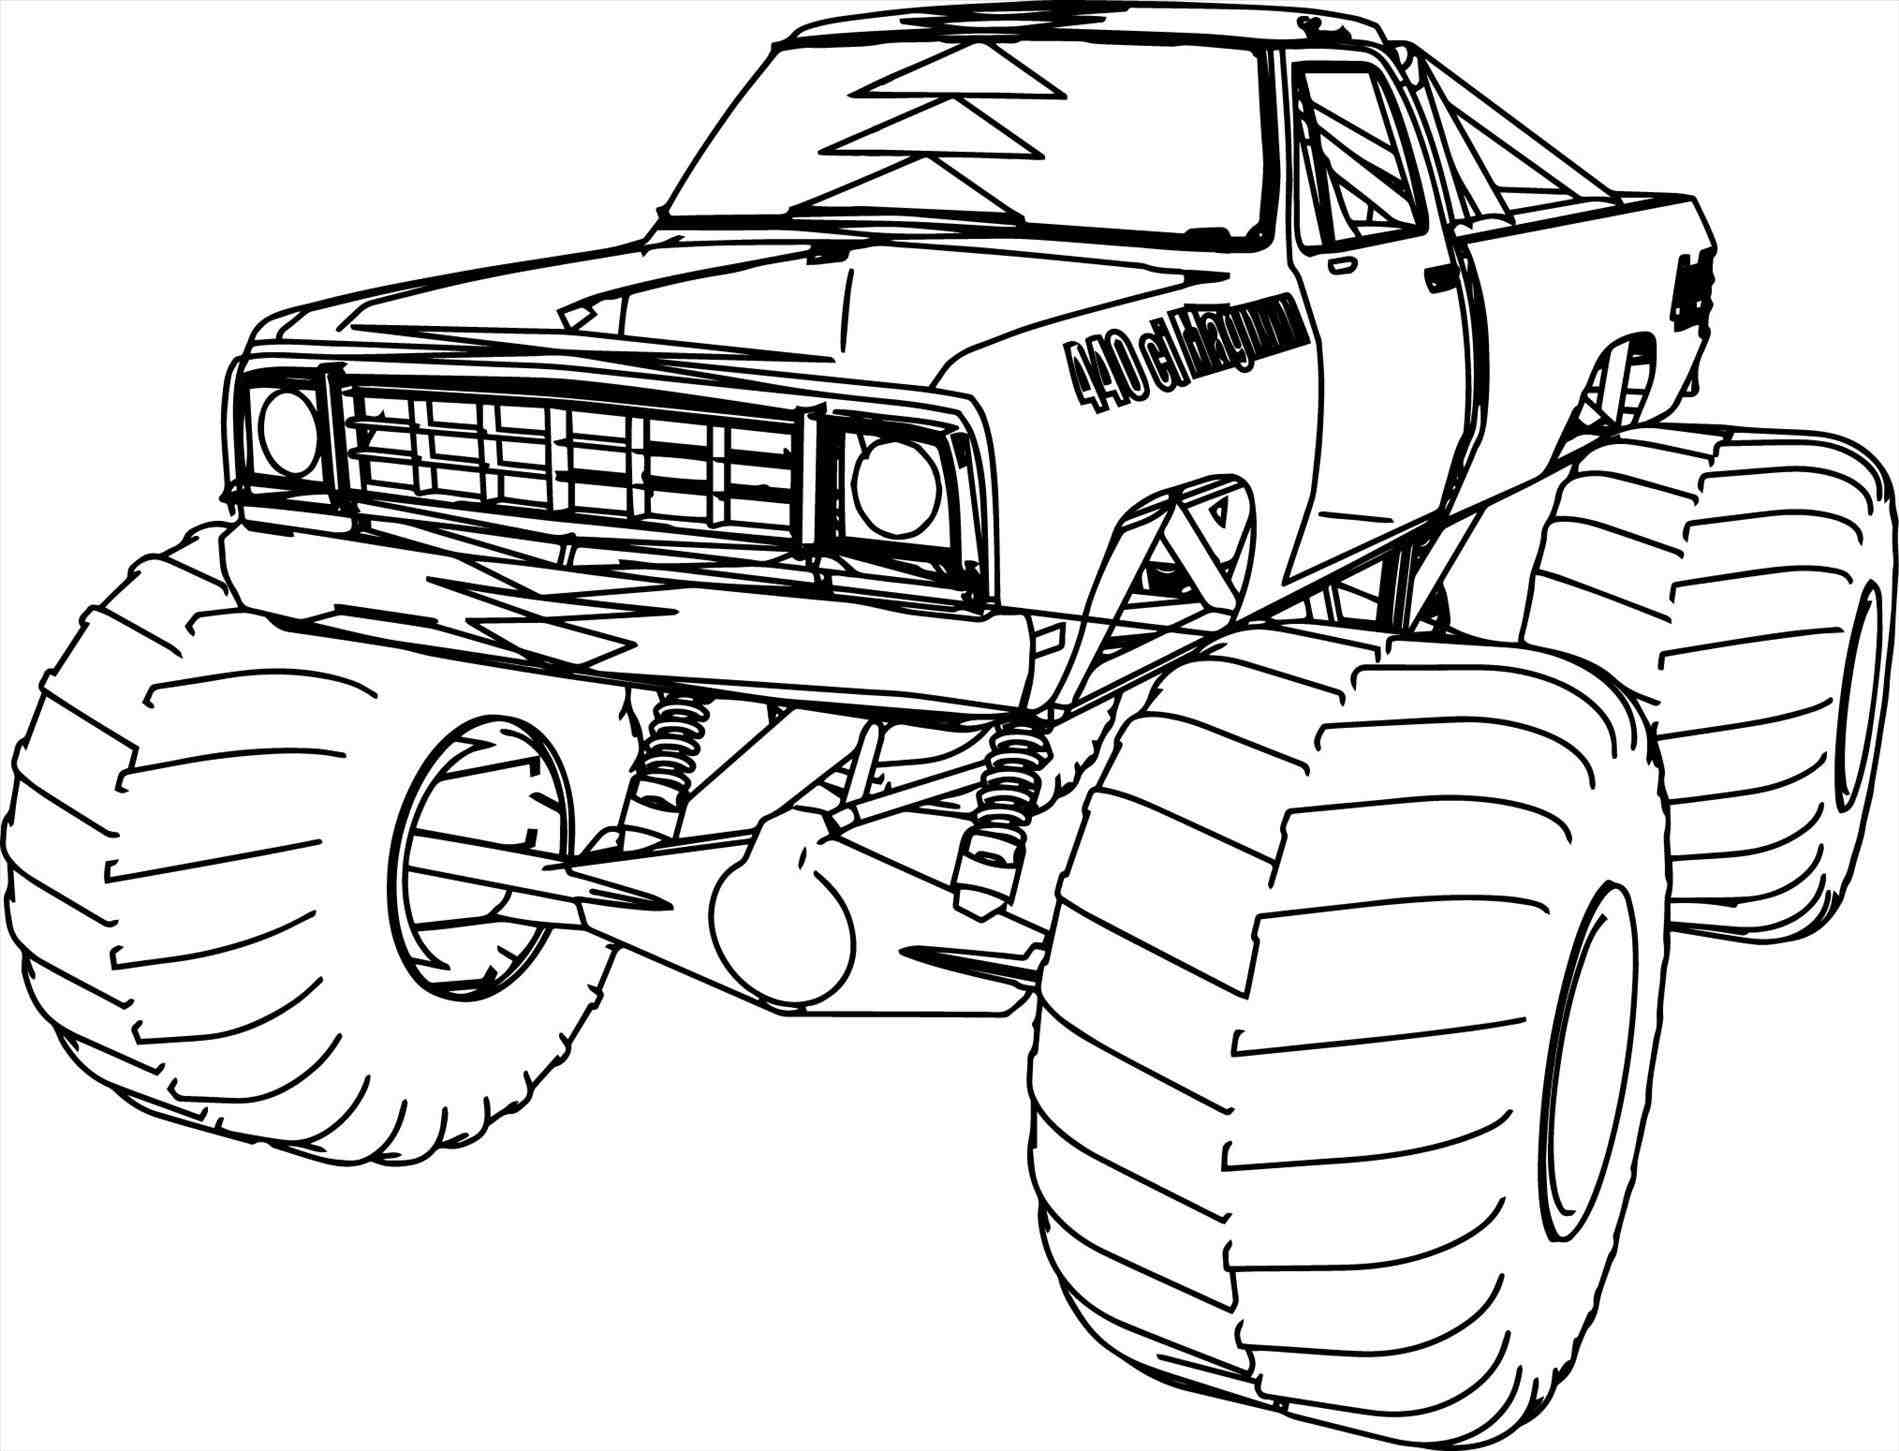 lifted truck coloring pages lifted truck coloring pages at getcoloringscom free lifted coloring pages truck